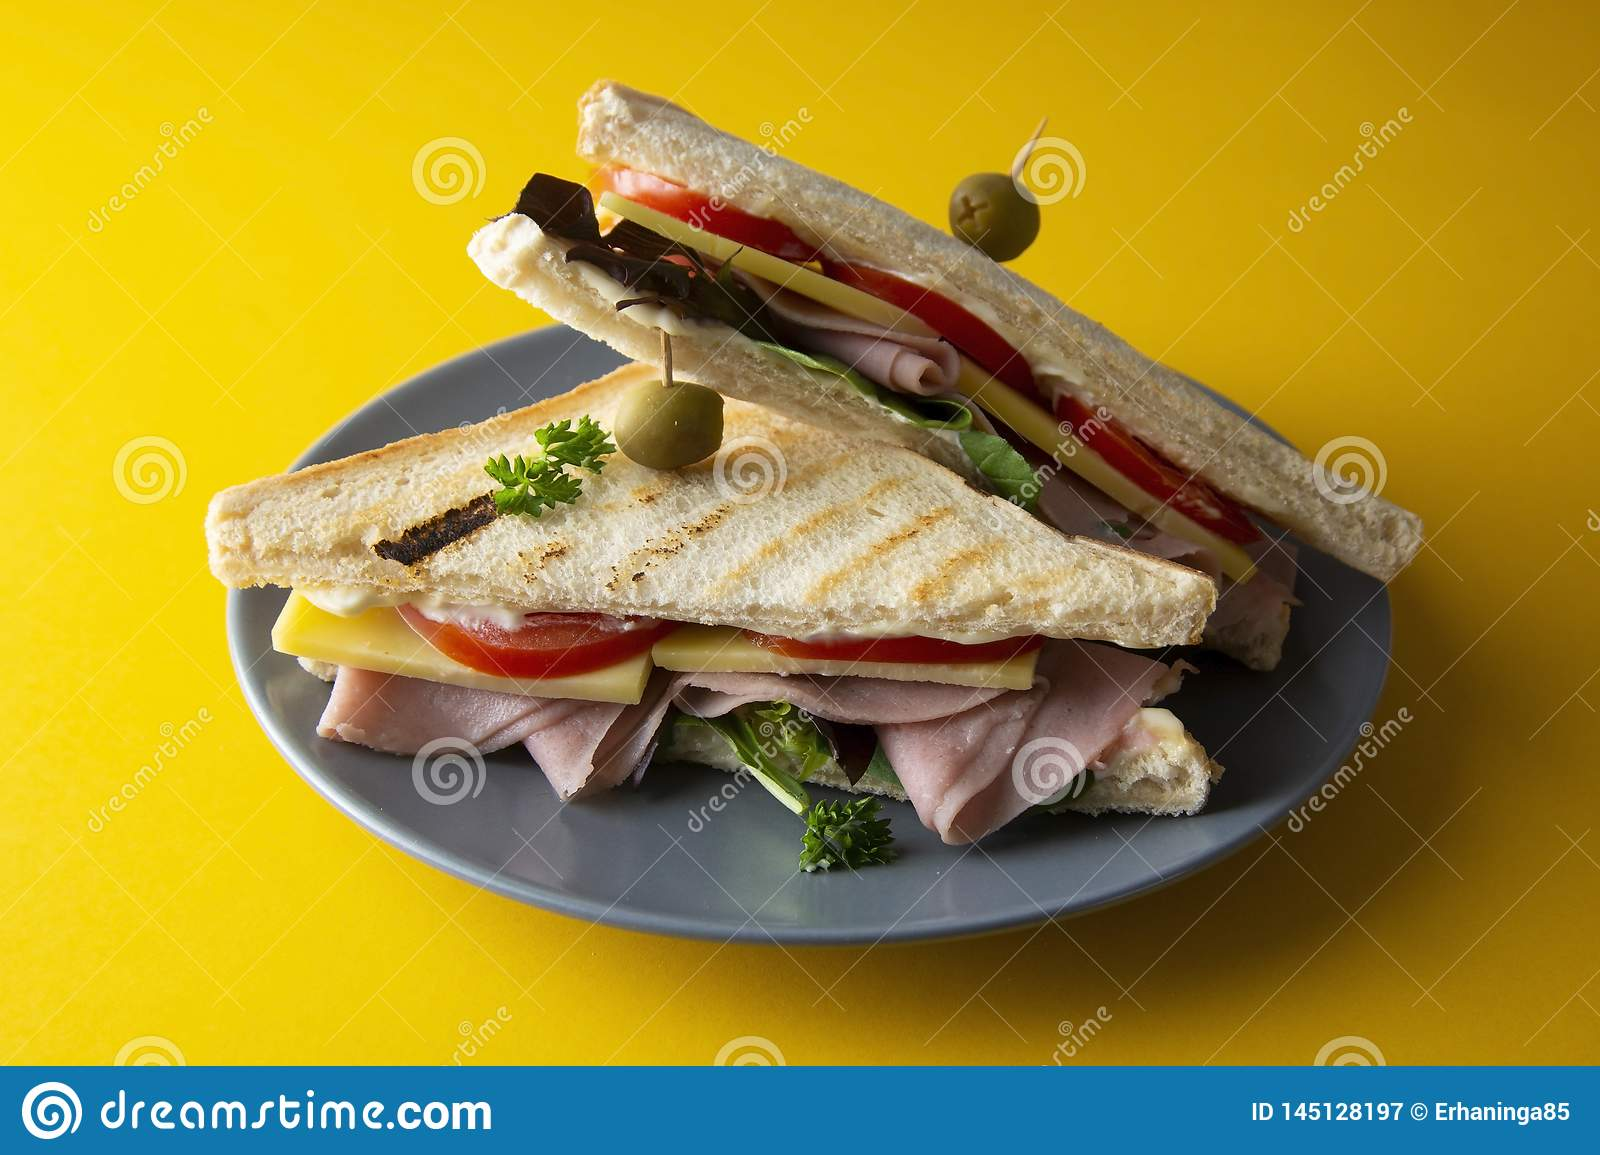 Club sandwich with ham isolated. Toasted double panini with ham, cheese fresh vegetables. Yellow background